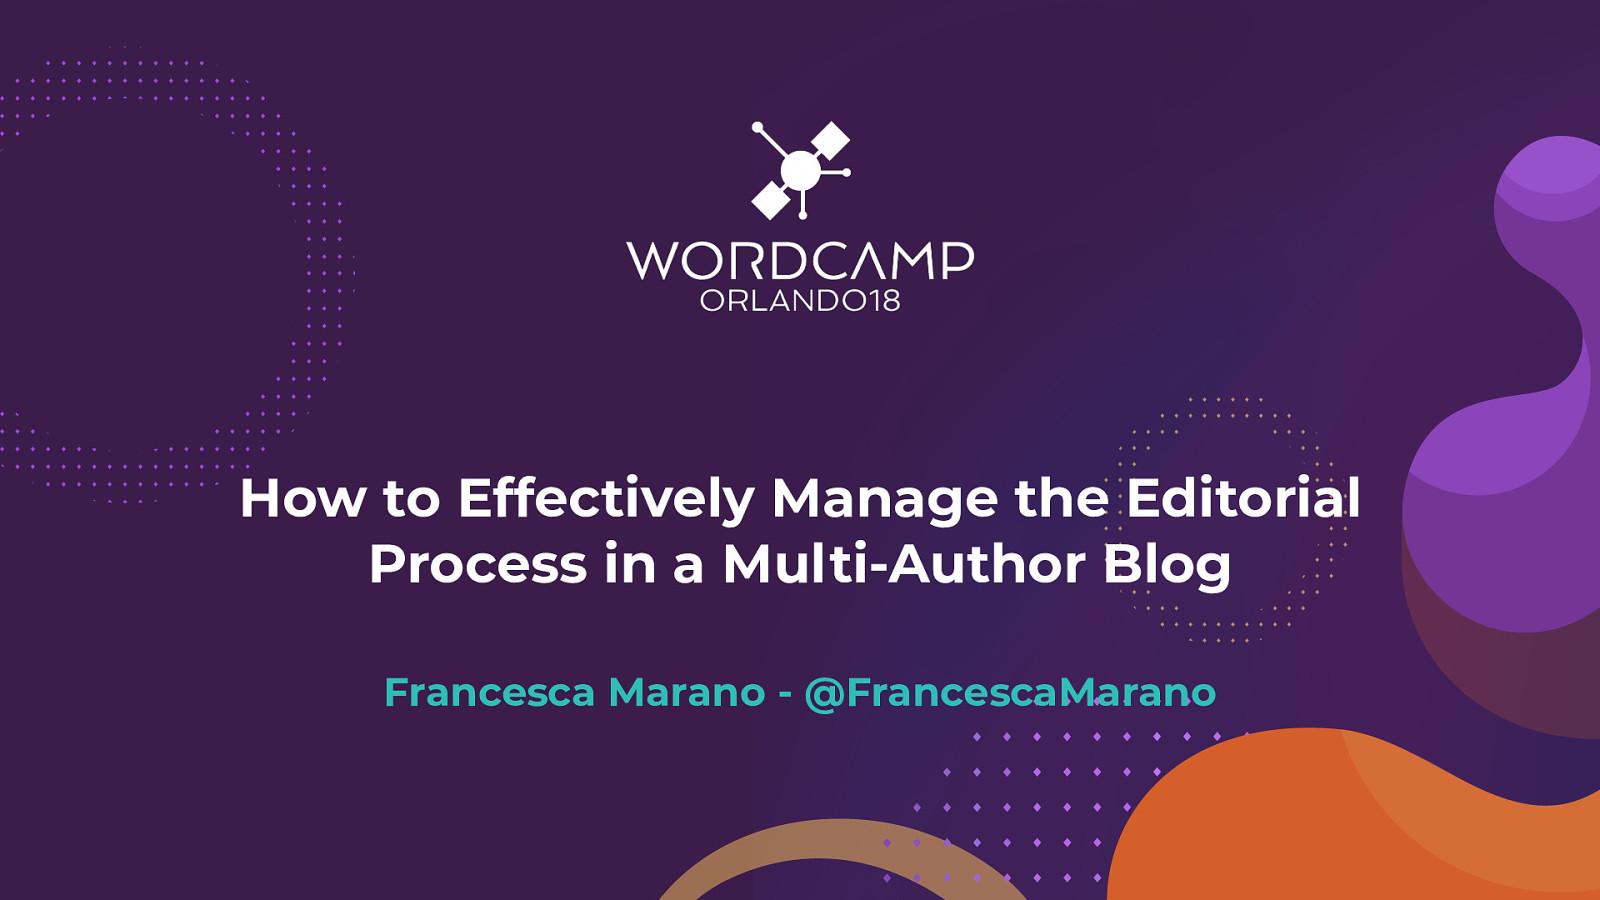 How to Effectively Manage the Editorial Process in a Multi-Author Blog